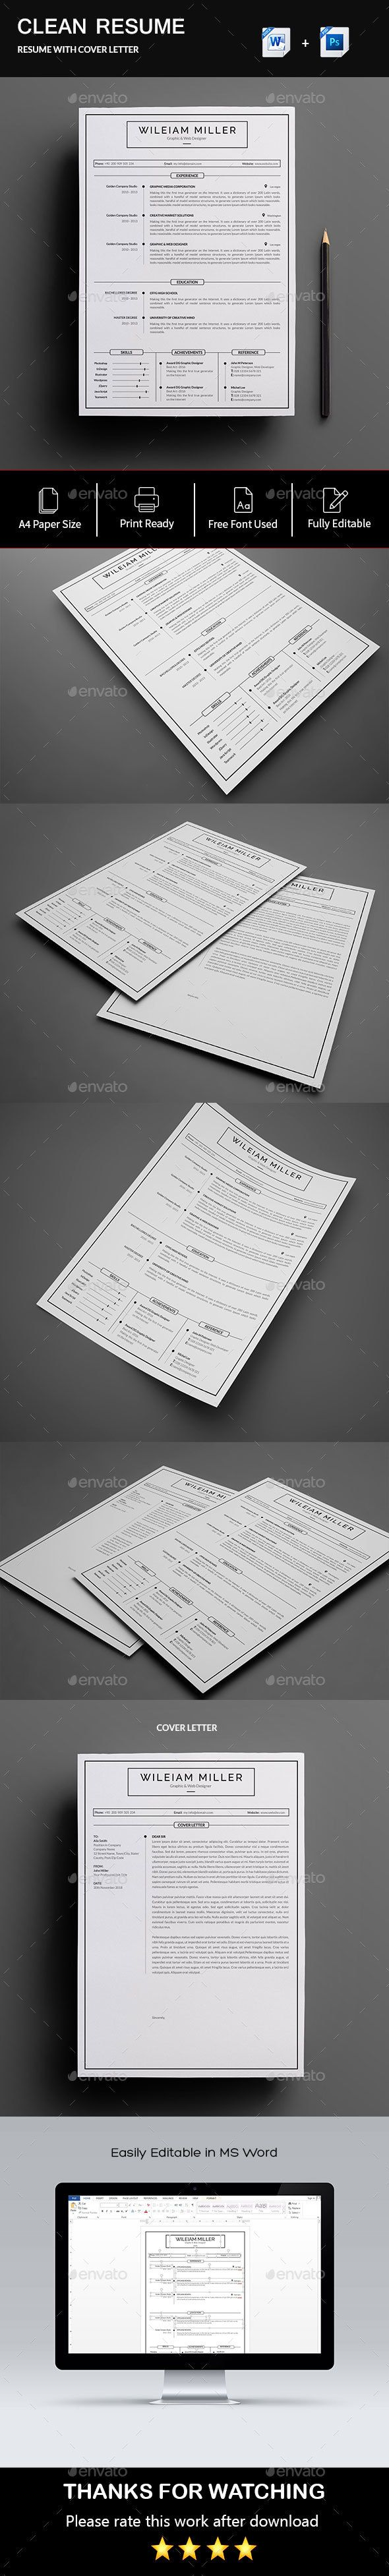 Resume The perfect way to make the best impression. Strong typographic structure and very easy to use and customize. – The resume have a very organized and named layers, really easy to customize.